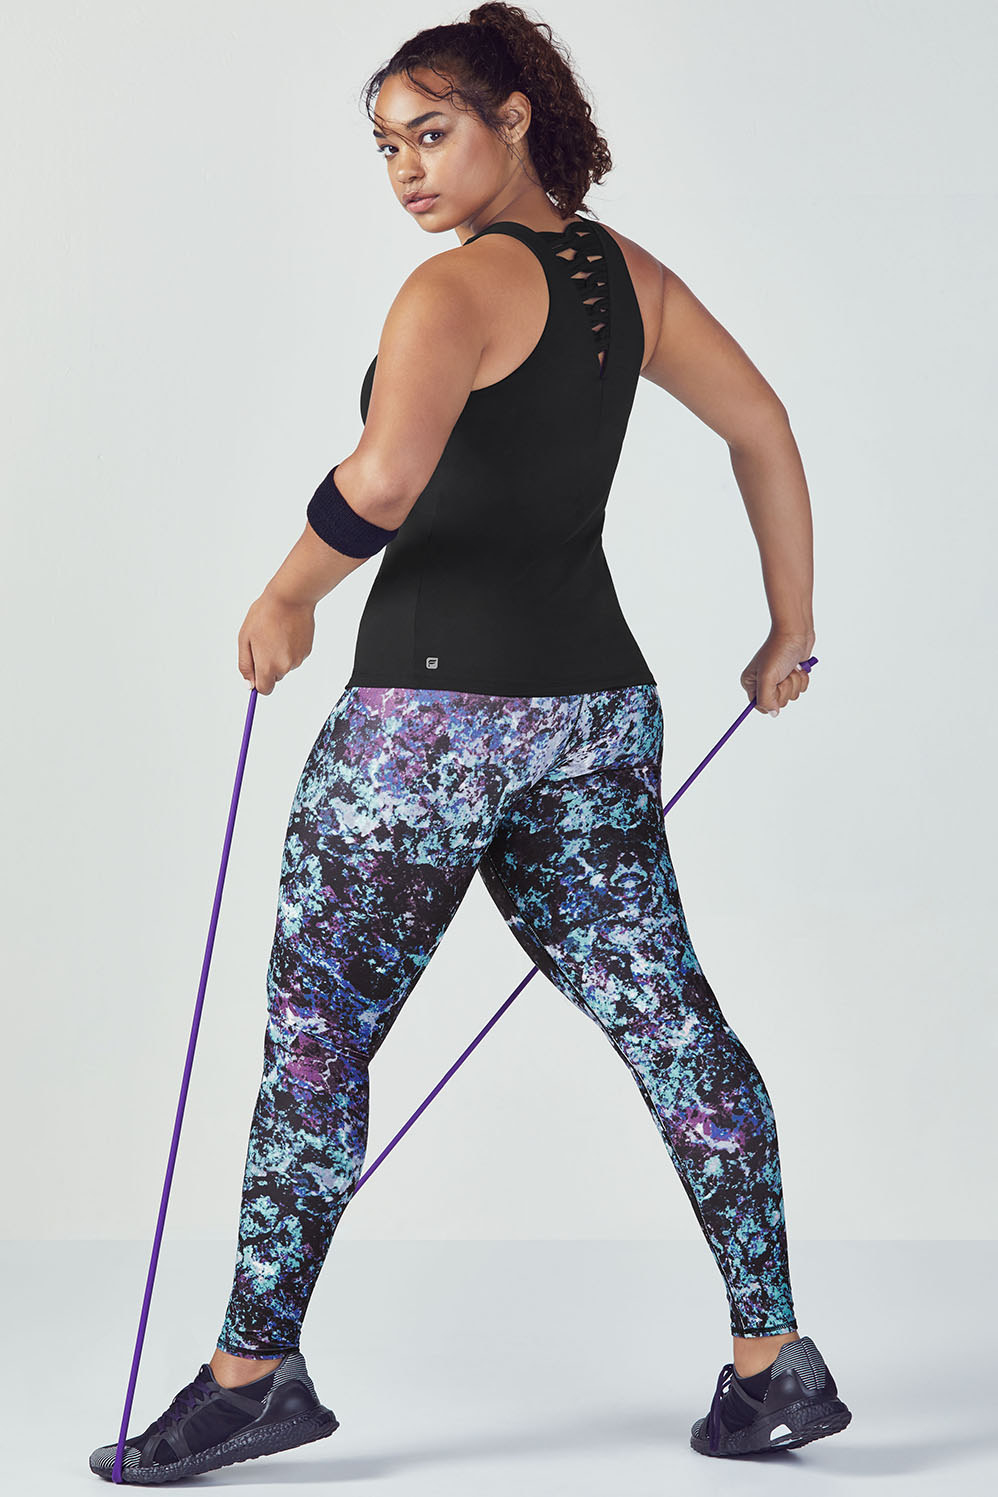 Fat cat Pattern Fitness Leggings Gym Outfits